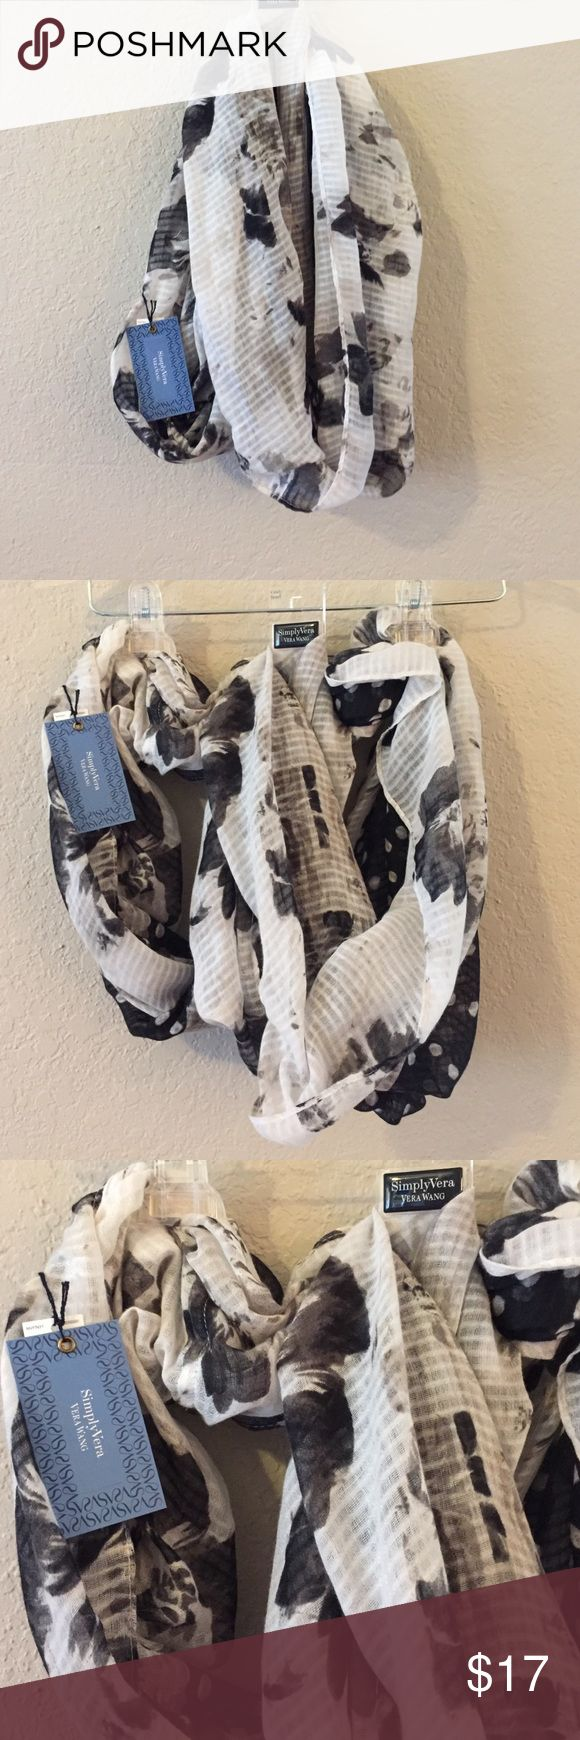 Simply Vera Vera Wang Cowl Scarf Simply Vera Vera Wang Cowl Scarf.  Adorable black and white Cowl Scarf.  Accessorize, Accessorize, Accessorize! Simply Vera Vera Wang Accessories Scarves & Wraps